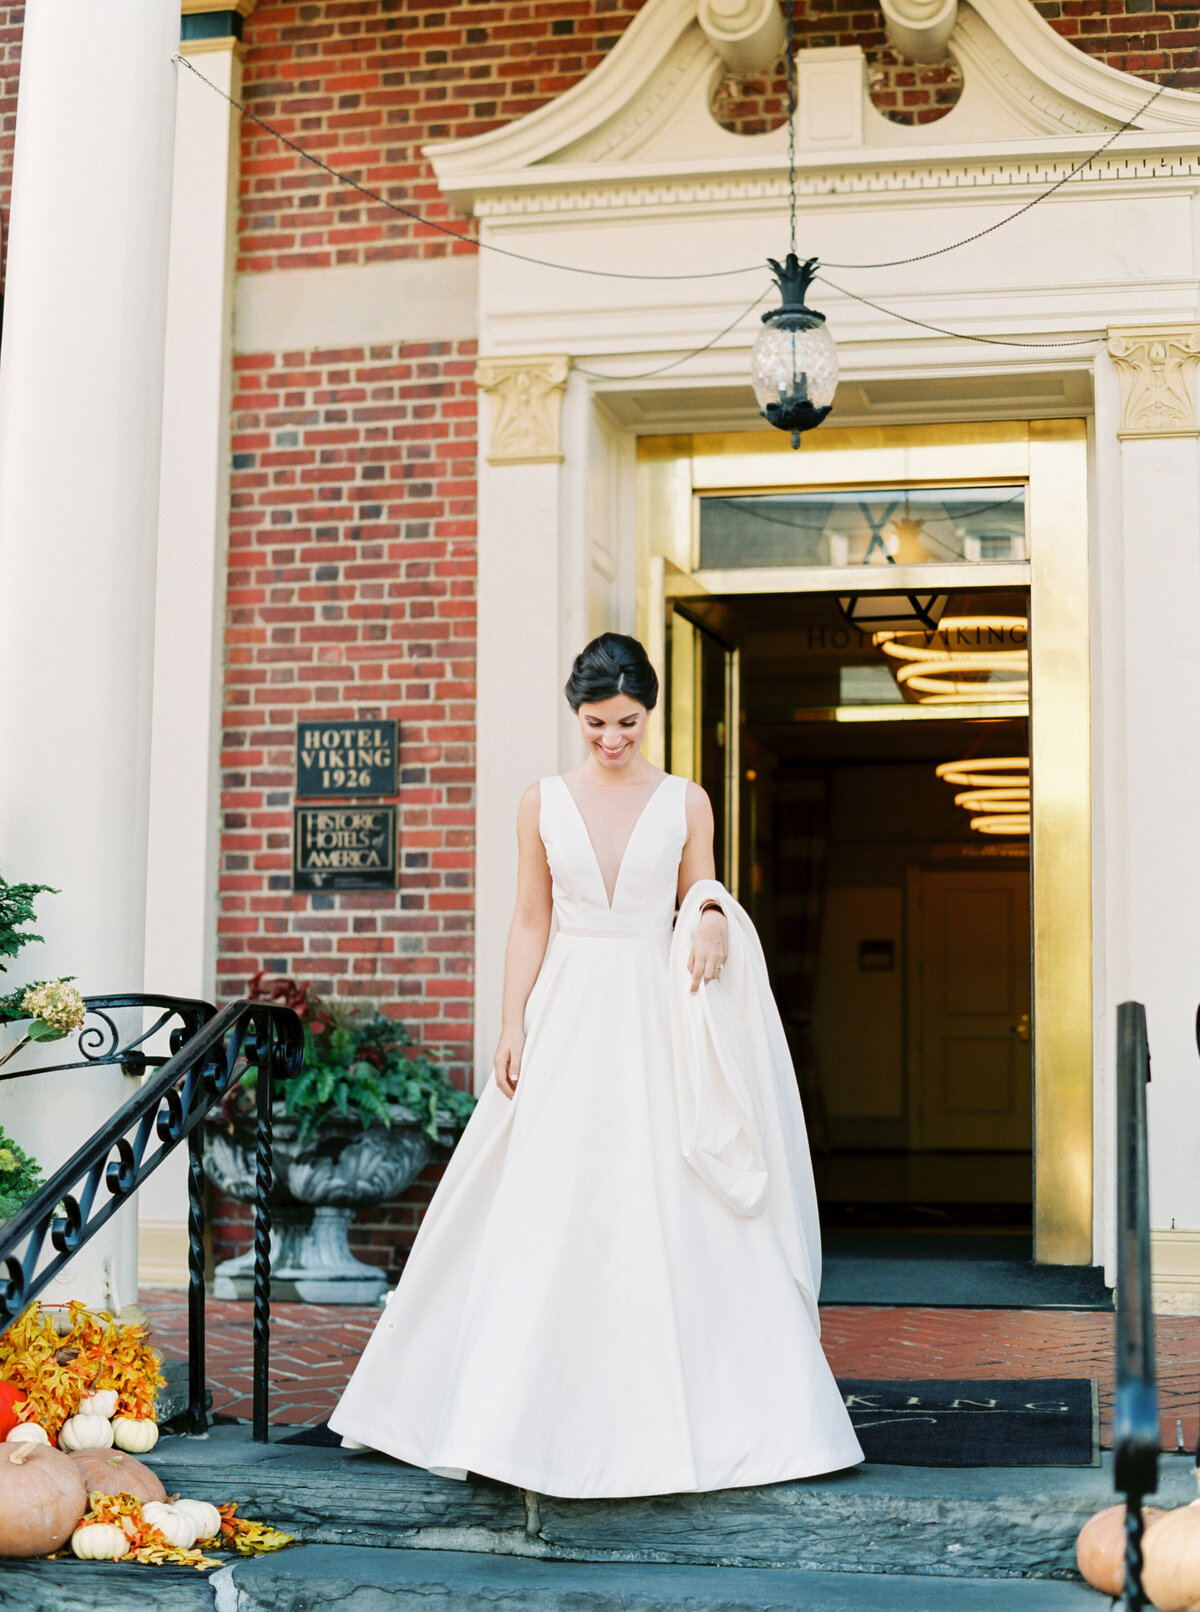 Tiffaney Childs-Newport Wedding Photographer-Lori + Christopher-Glenmanor House Wedding-220